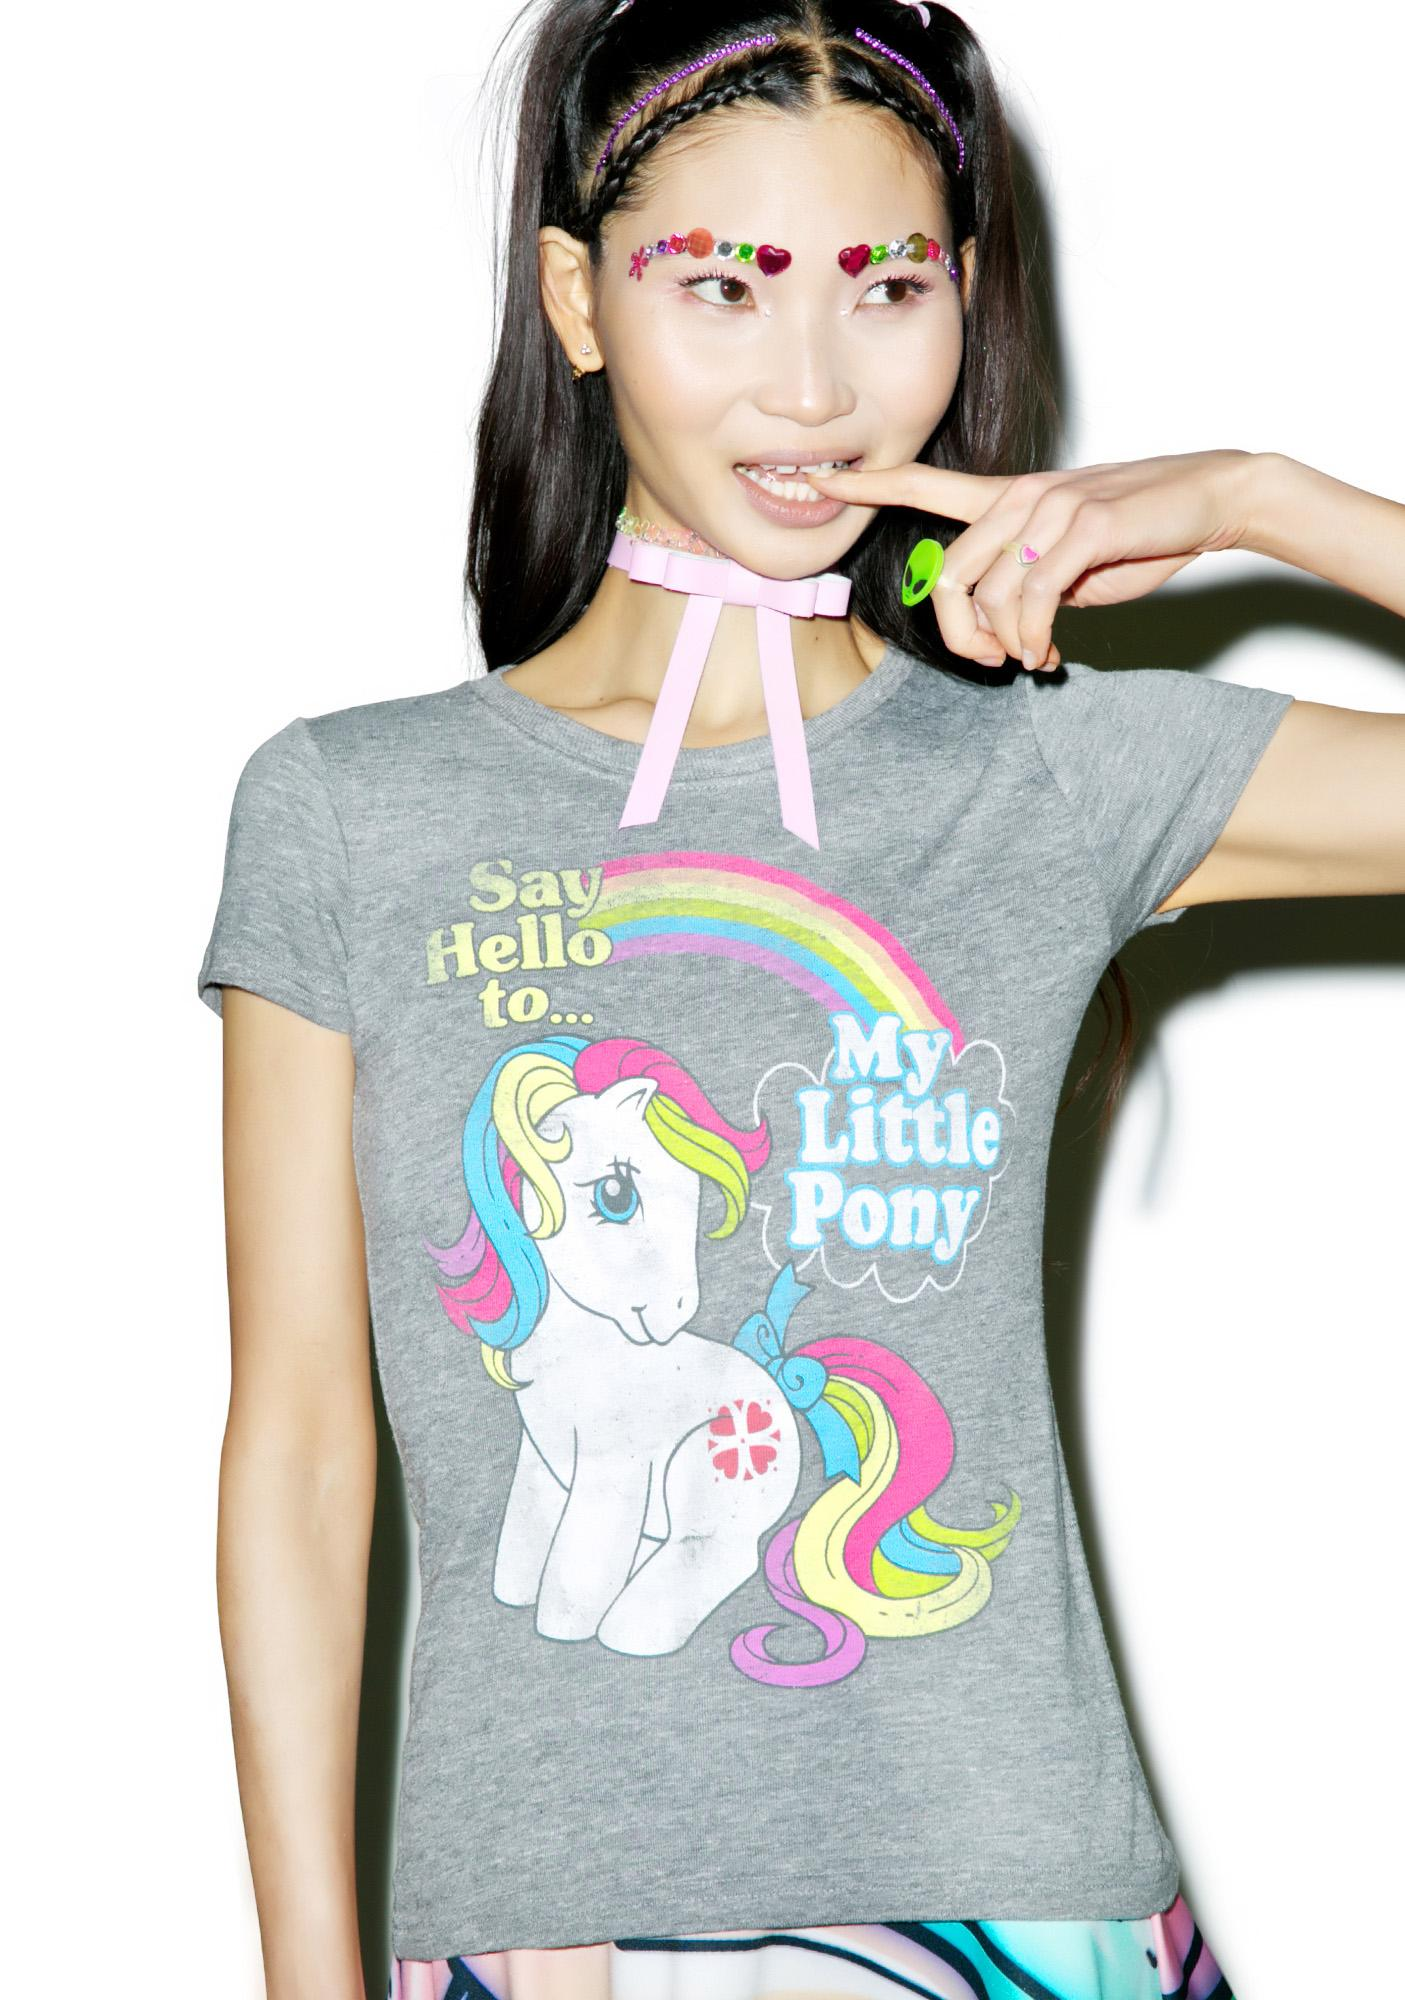 Introducing My Little Pony Tee